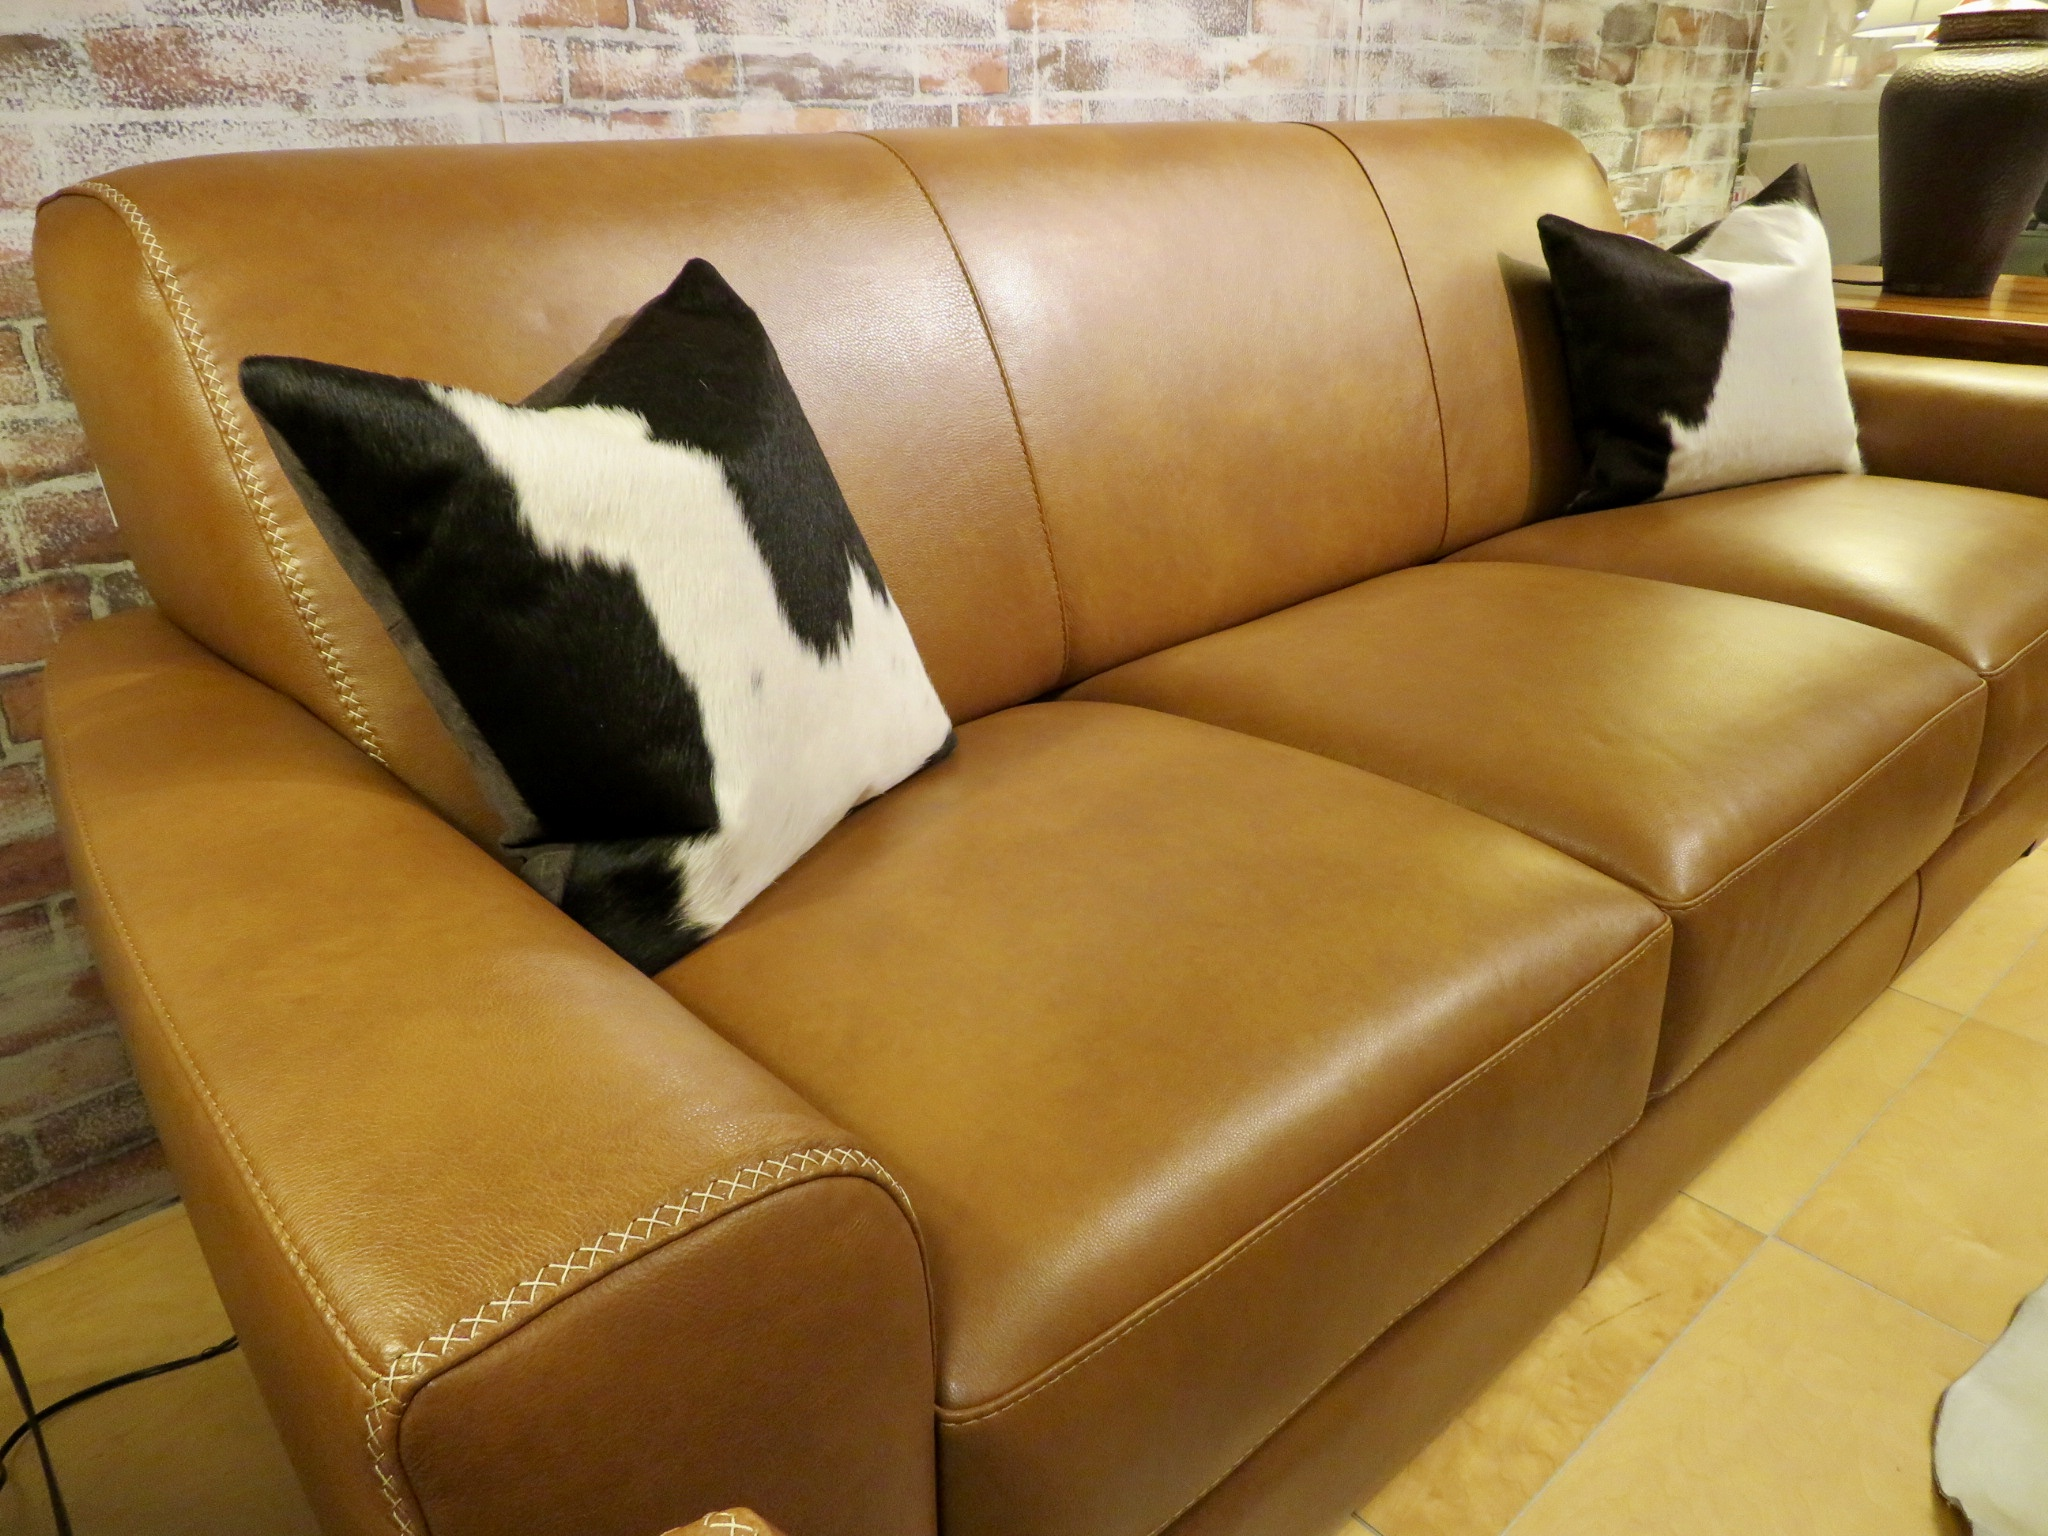 Max Divani Decorative Stitch & Leather 101: How To Differentiate and Care for Leather Furniture ...